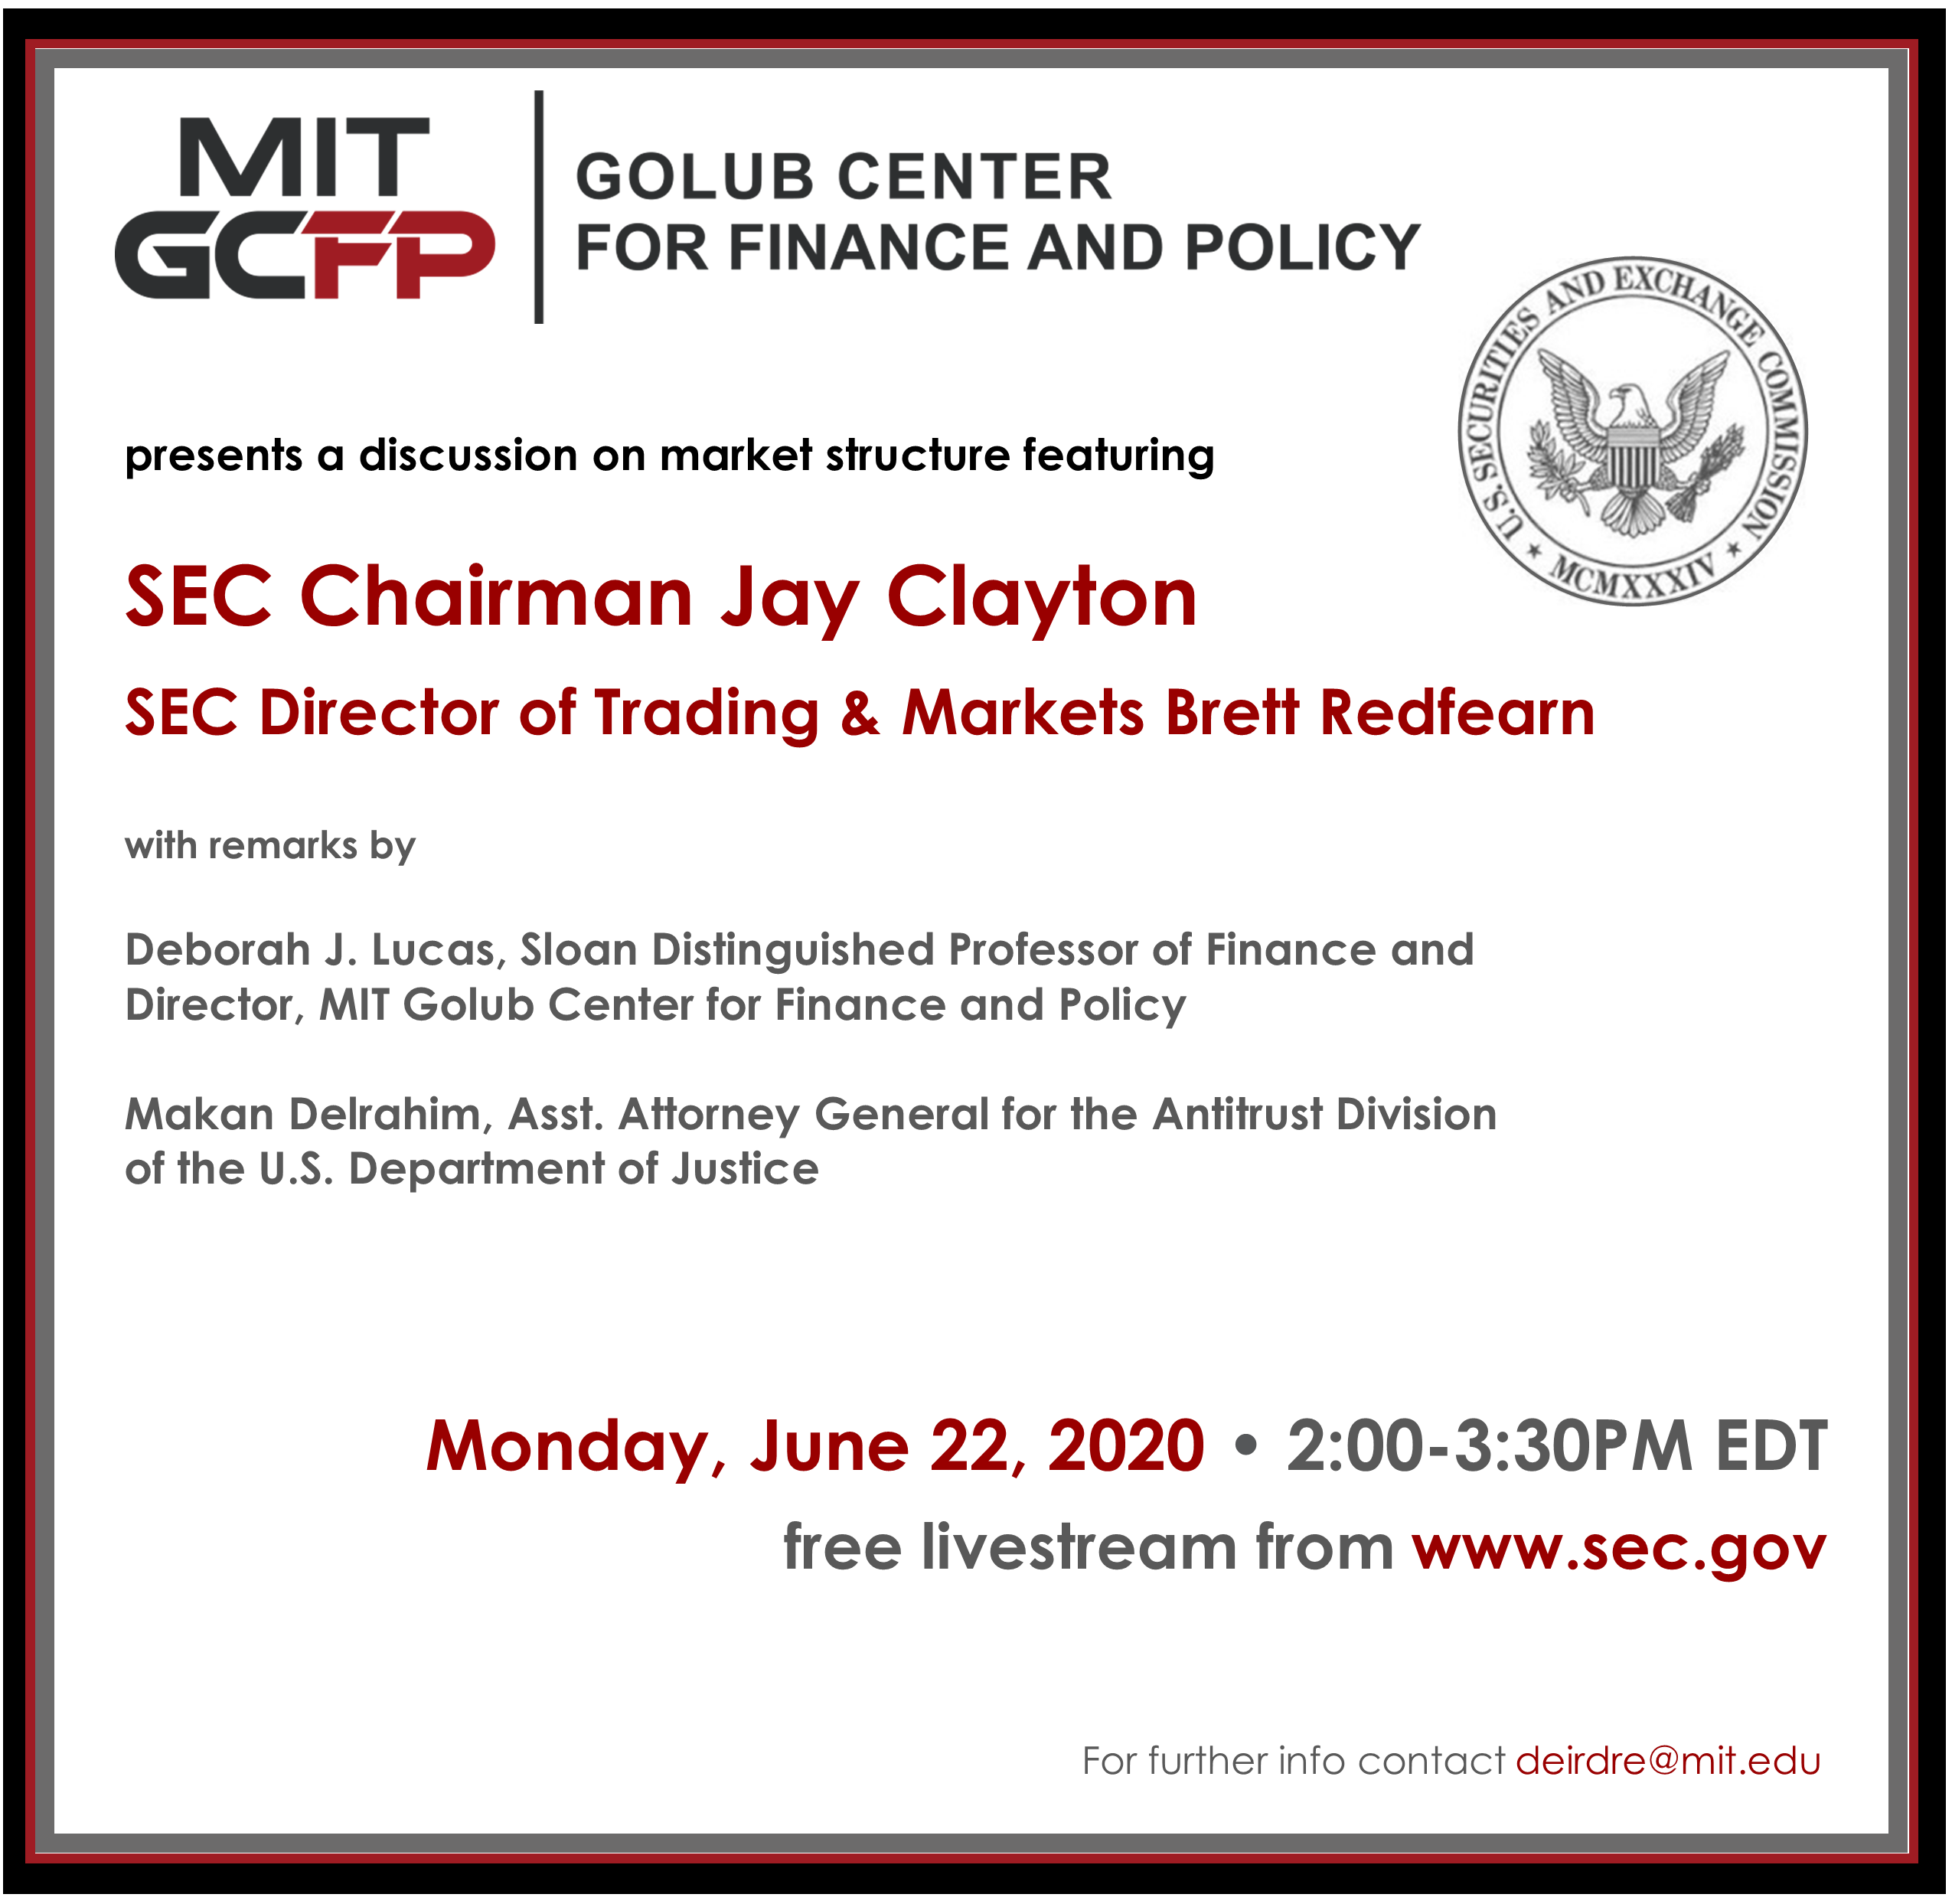 A discussion on market structure featuring SEC Chairman Jay Clayton